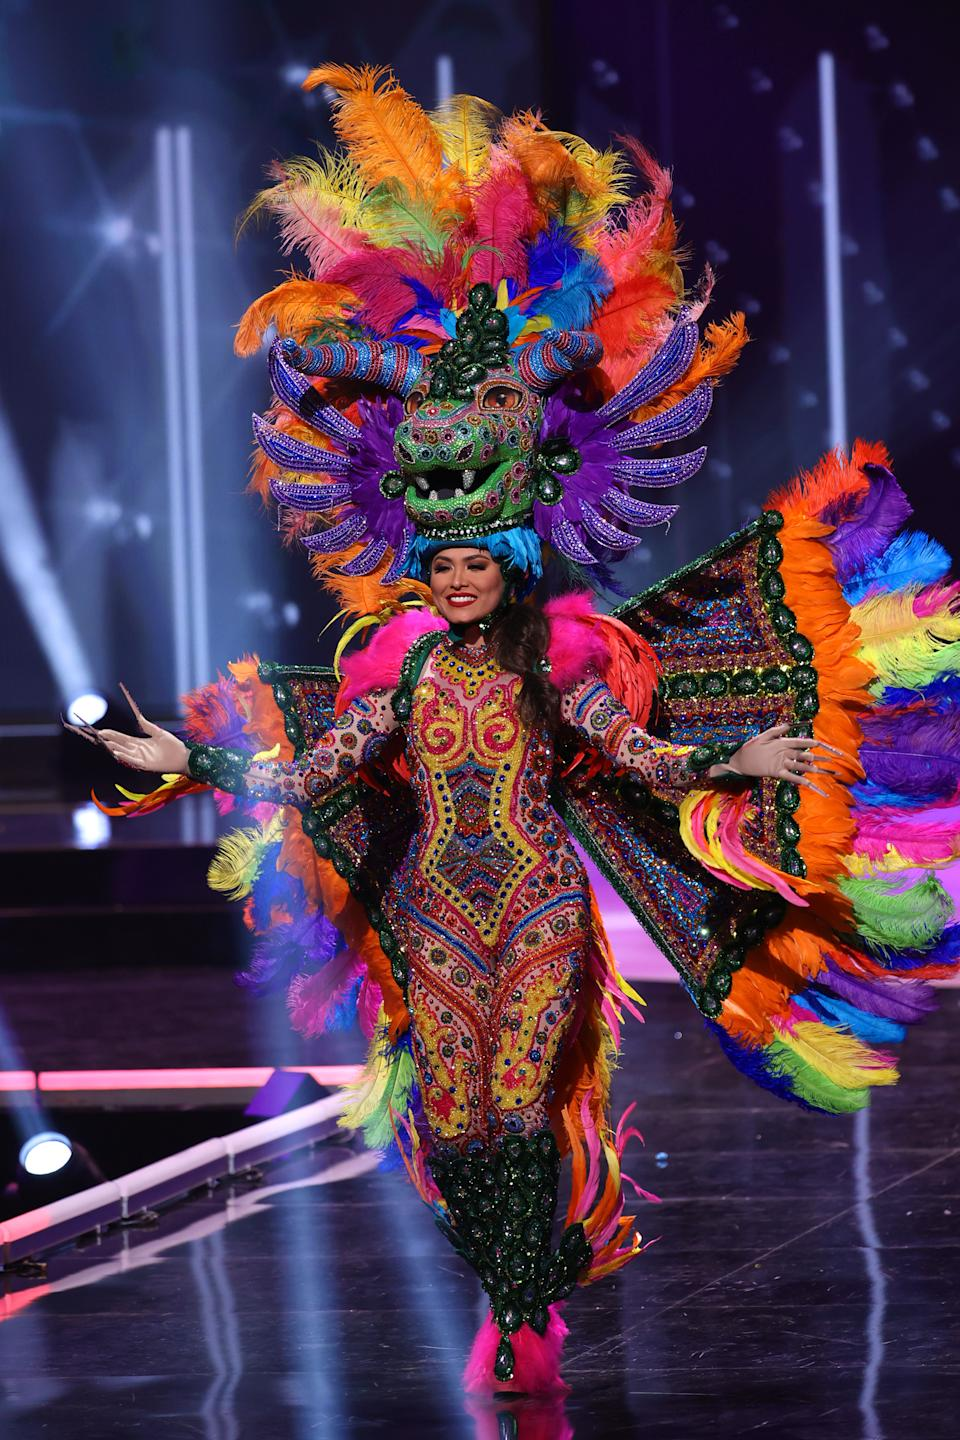 <p>Miss Mexico Andrea Meza appears onstage at the Miss Universe 2021 - National Costume Show at Seminole Hard Rock Hotel & Casino on May 13, 2021 in Hollywood, Florida. (Photo by Rodrigo Varela/Getty Images)</p>